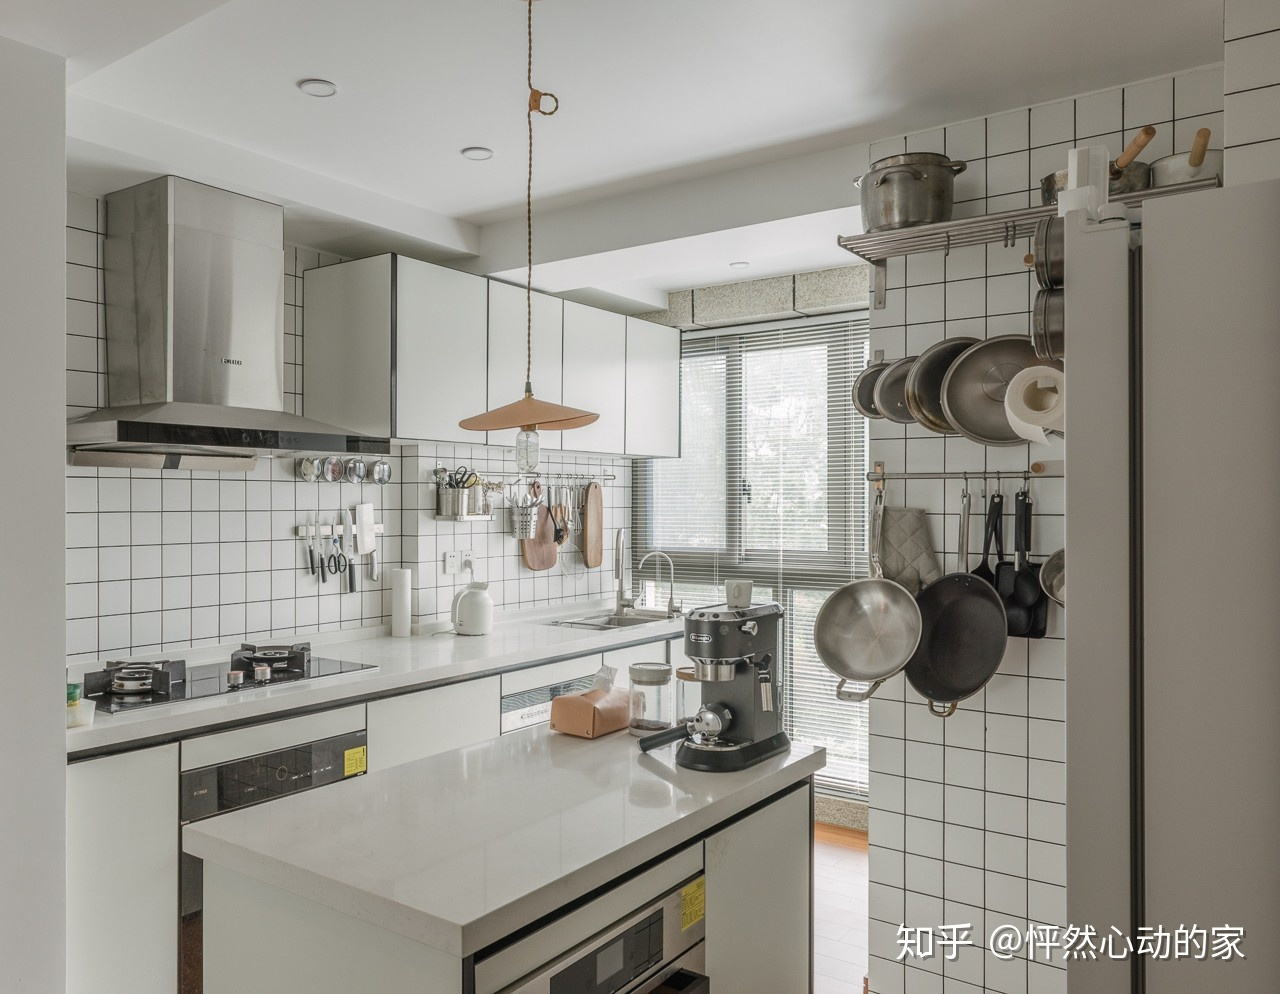 kitchen sink at lowes farm table 本行业相关 收藏夹 知乎 在lowes的厨房水槽